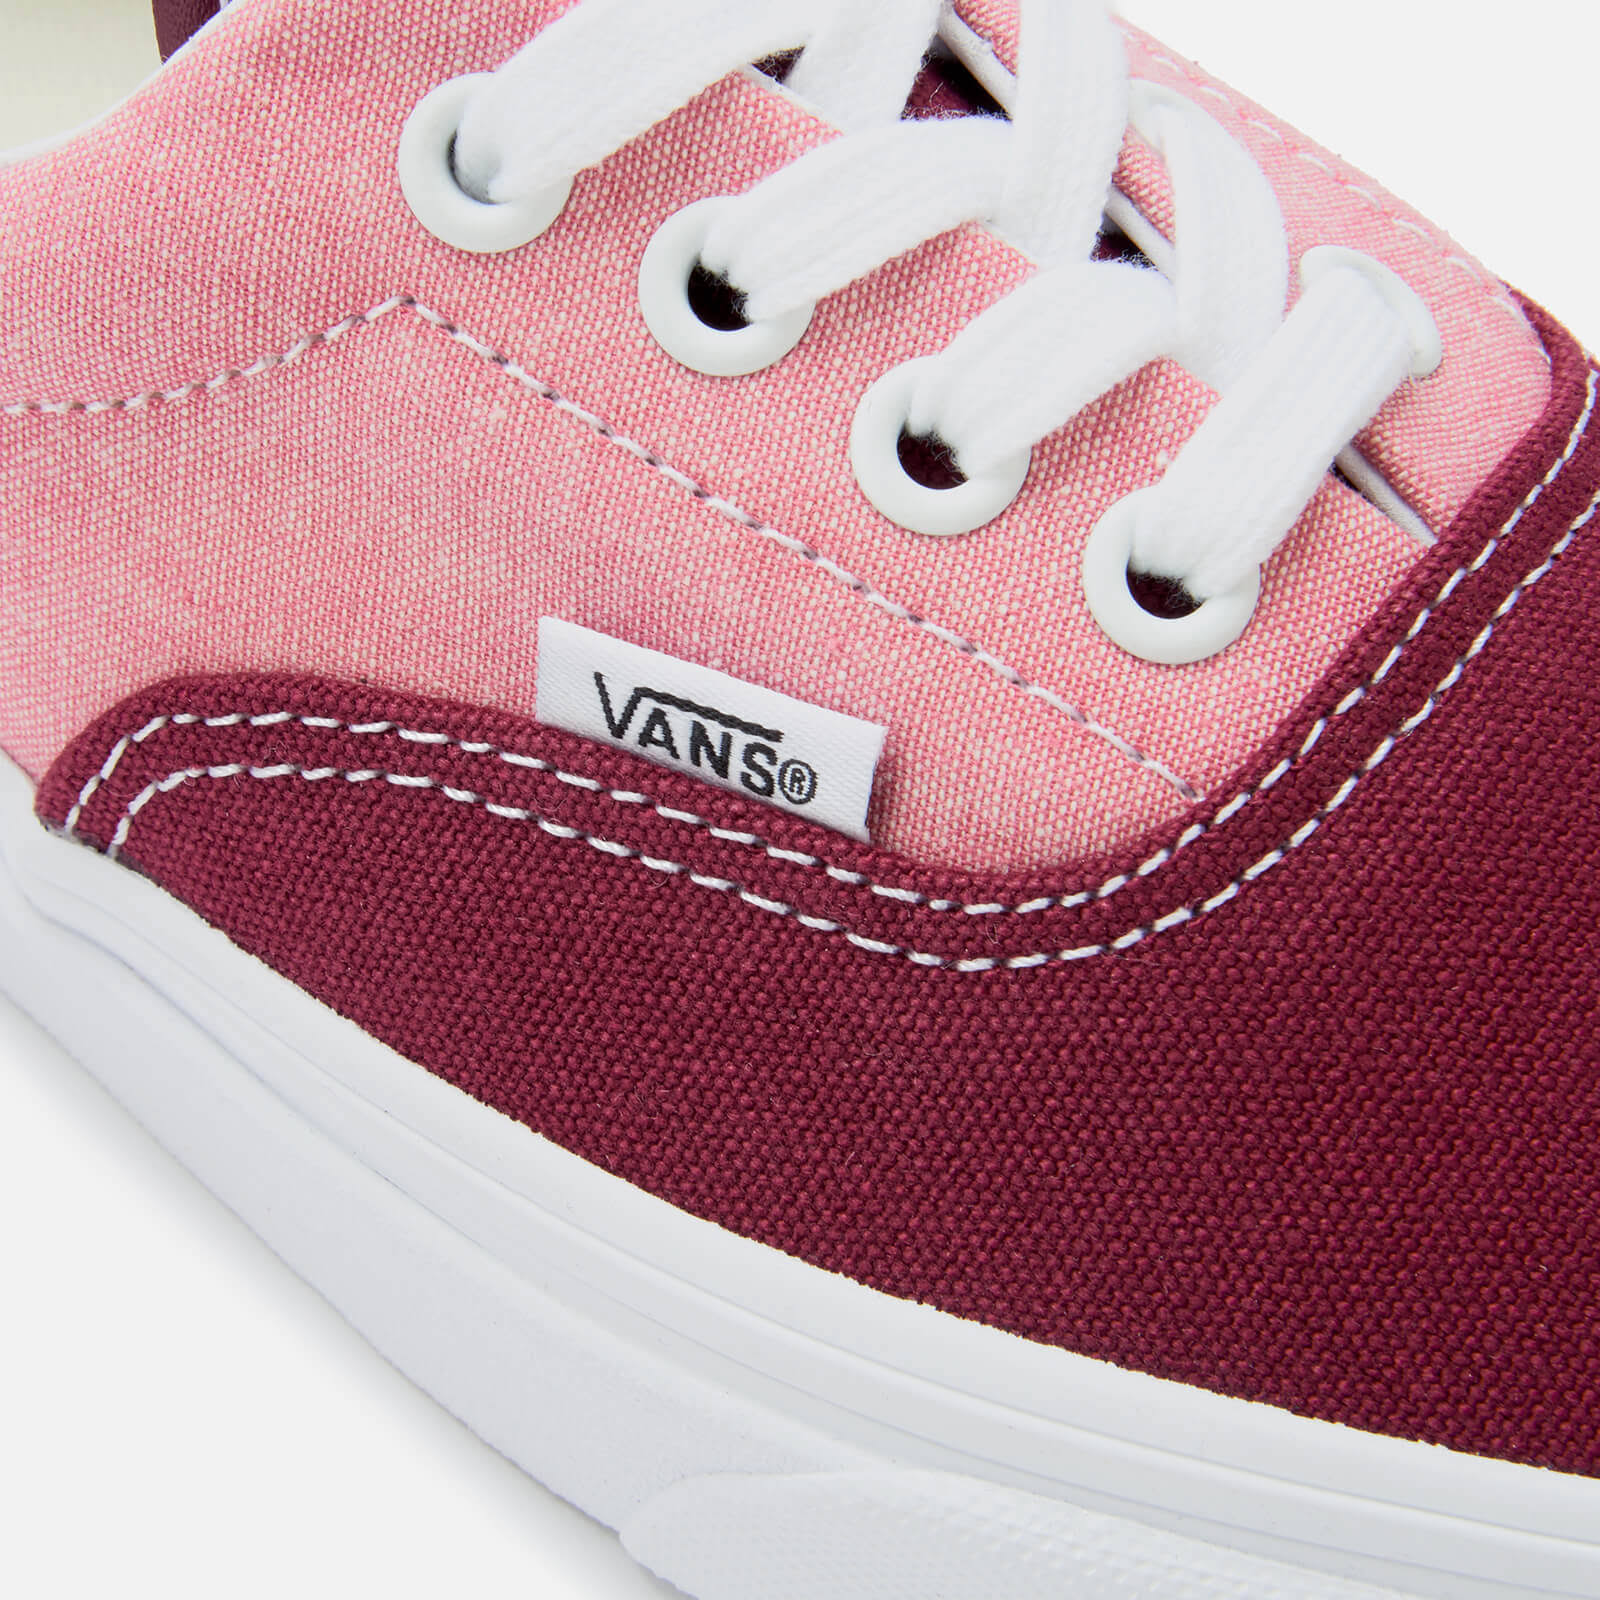 Royale Era Port Us Ua White 6 Vans True E eWEH9D2YI